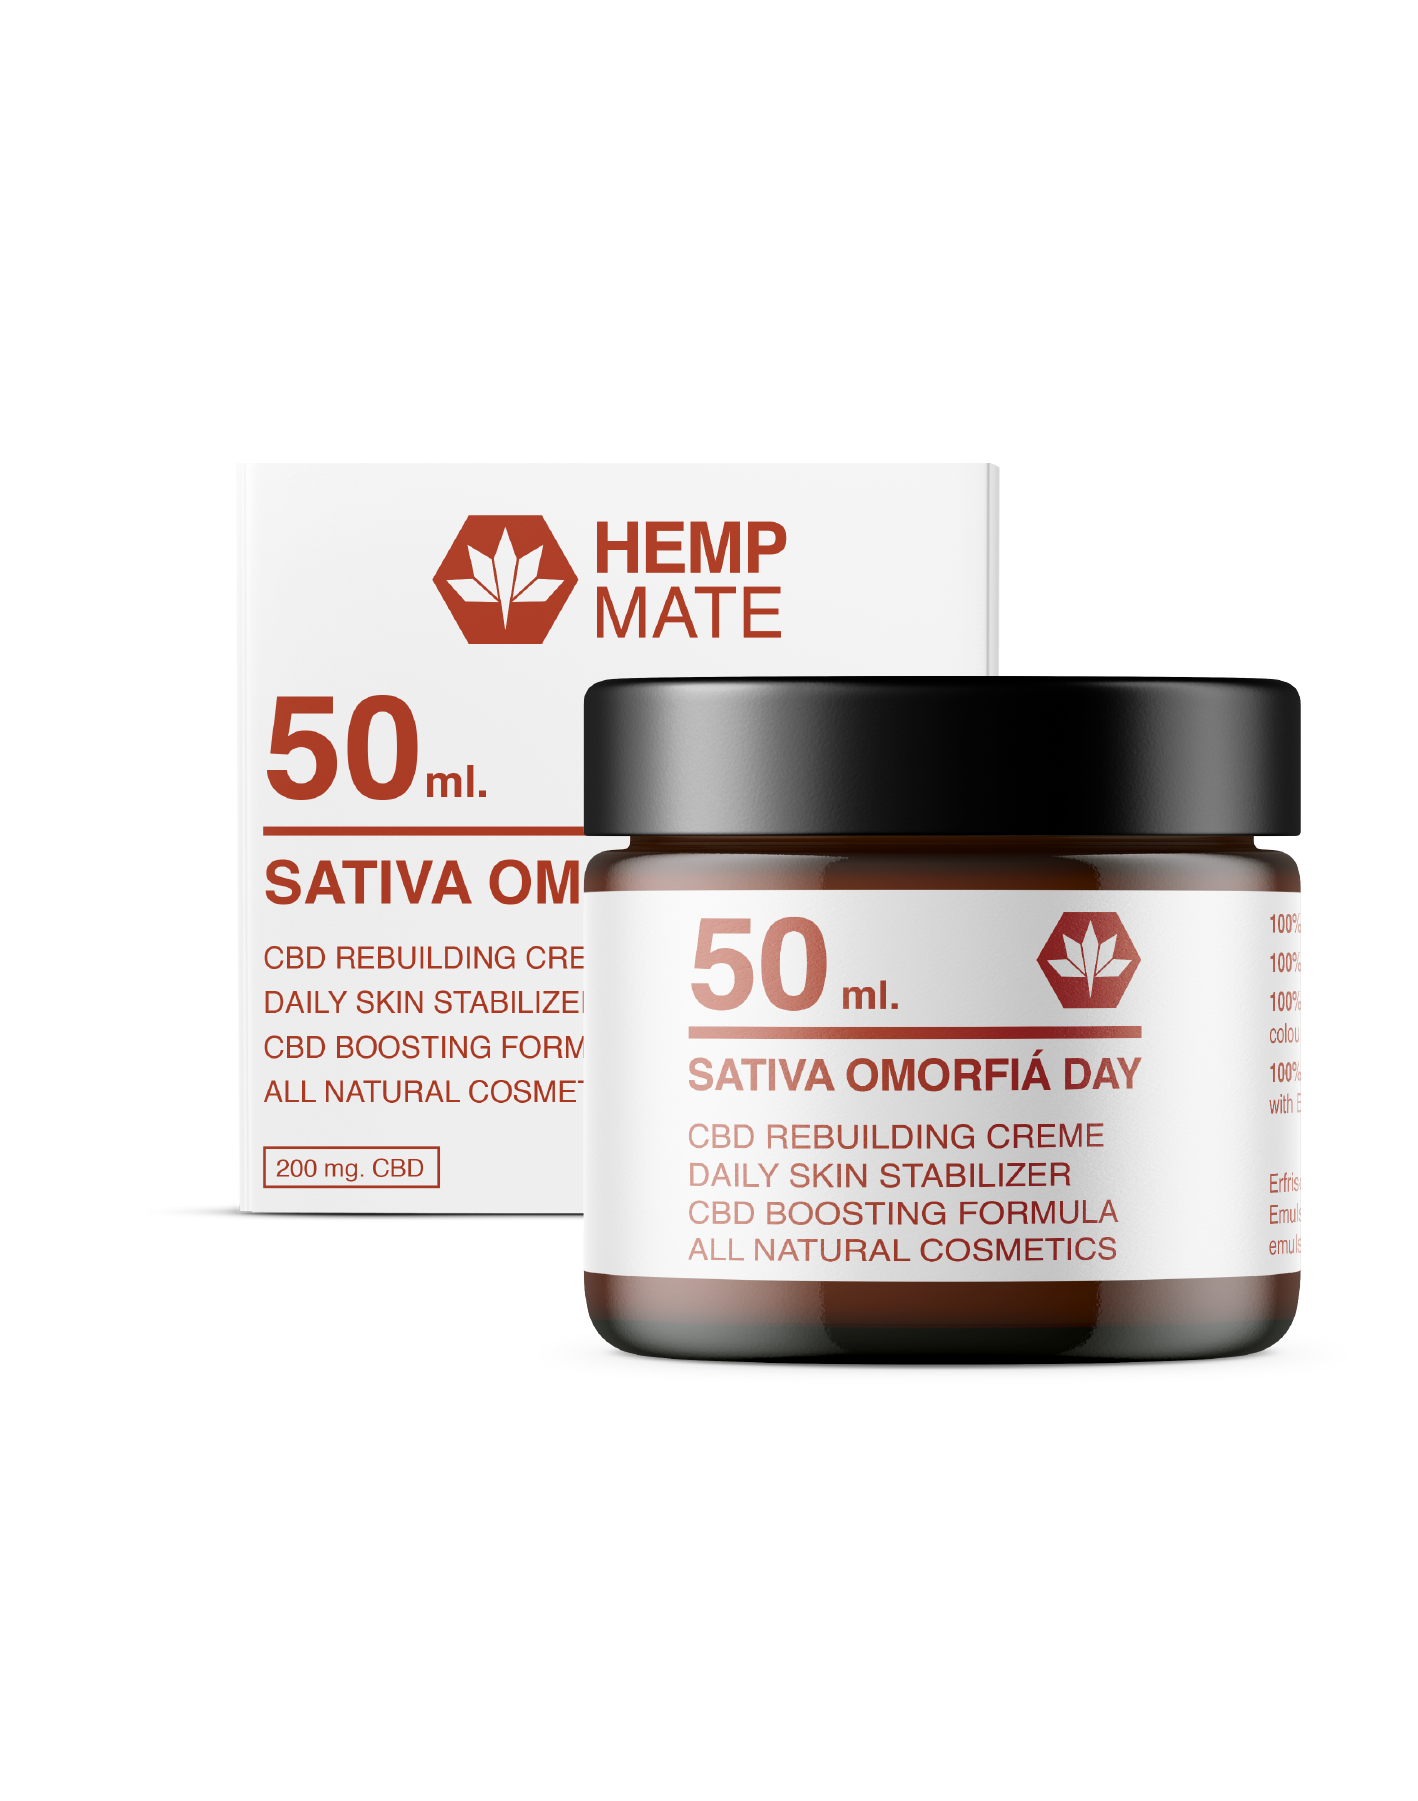 Sativa Omorfiá Day